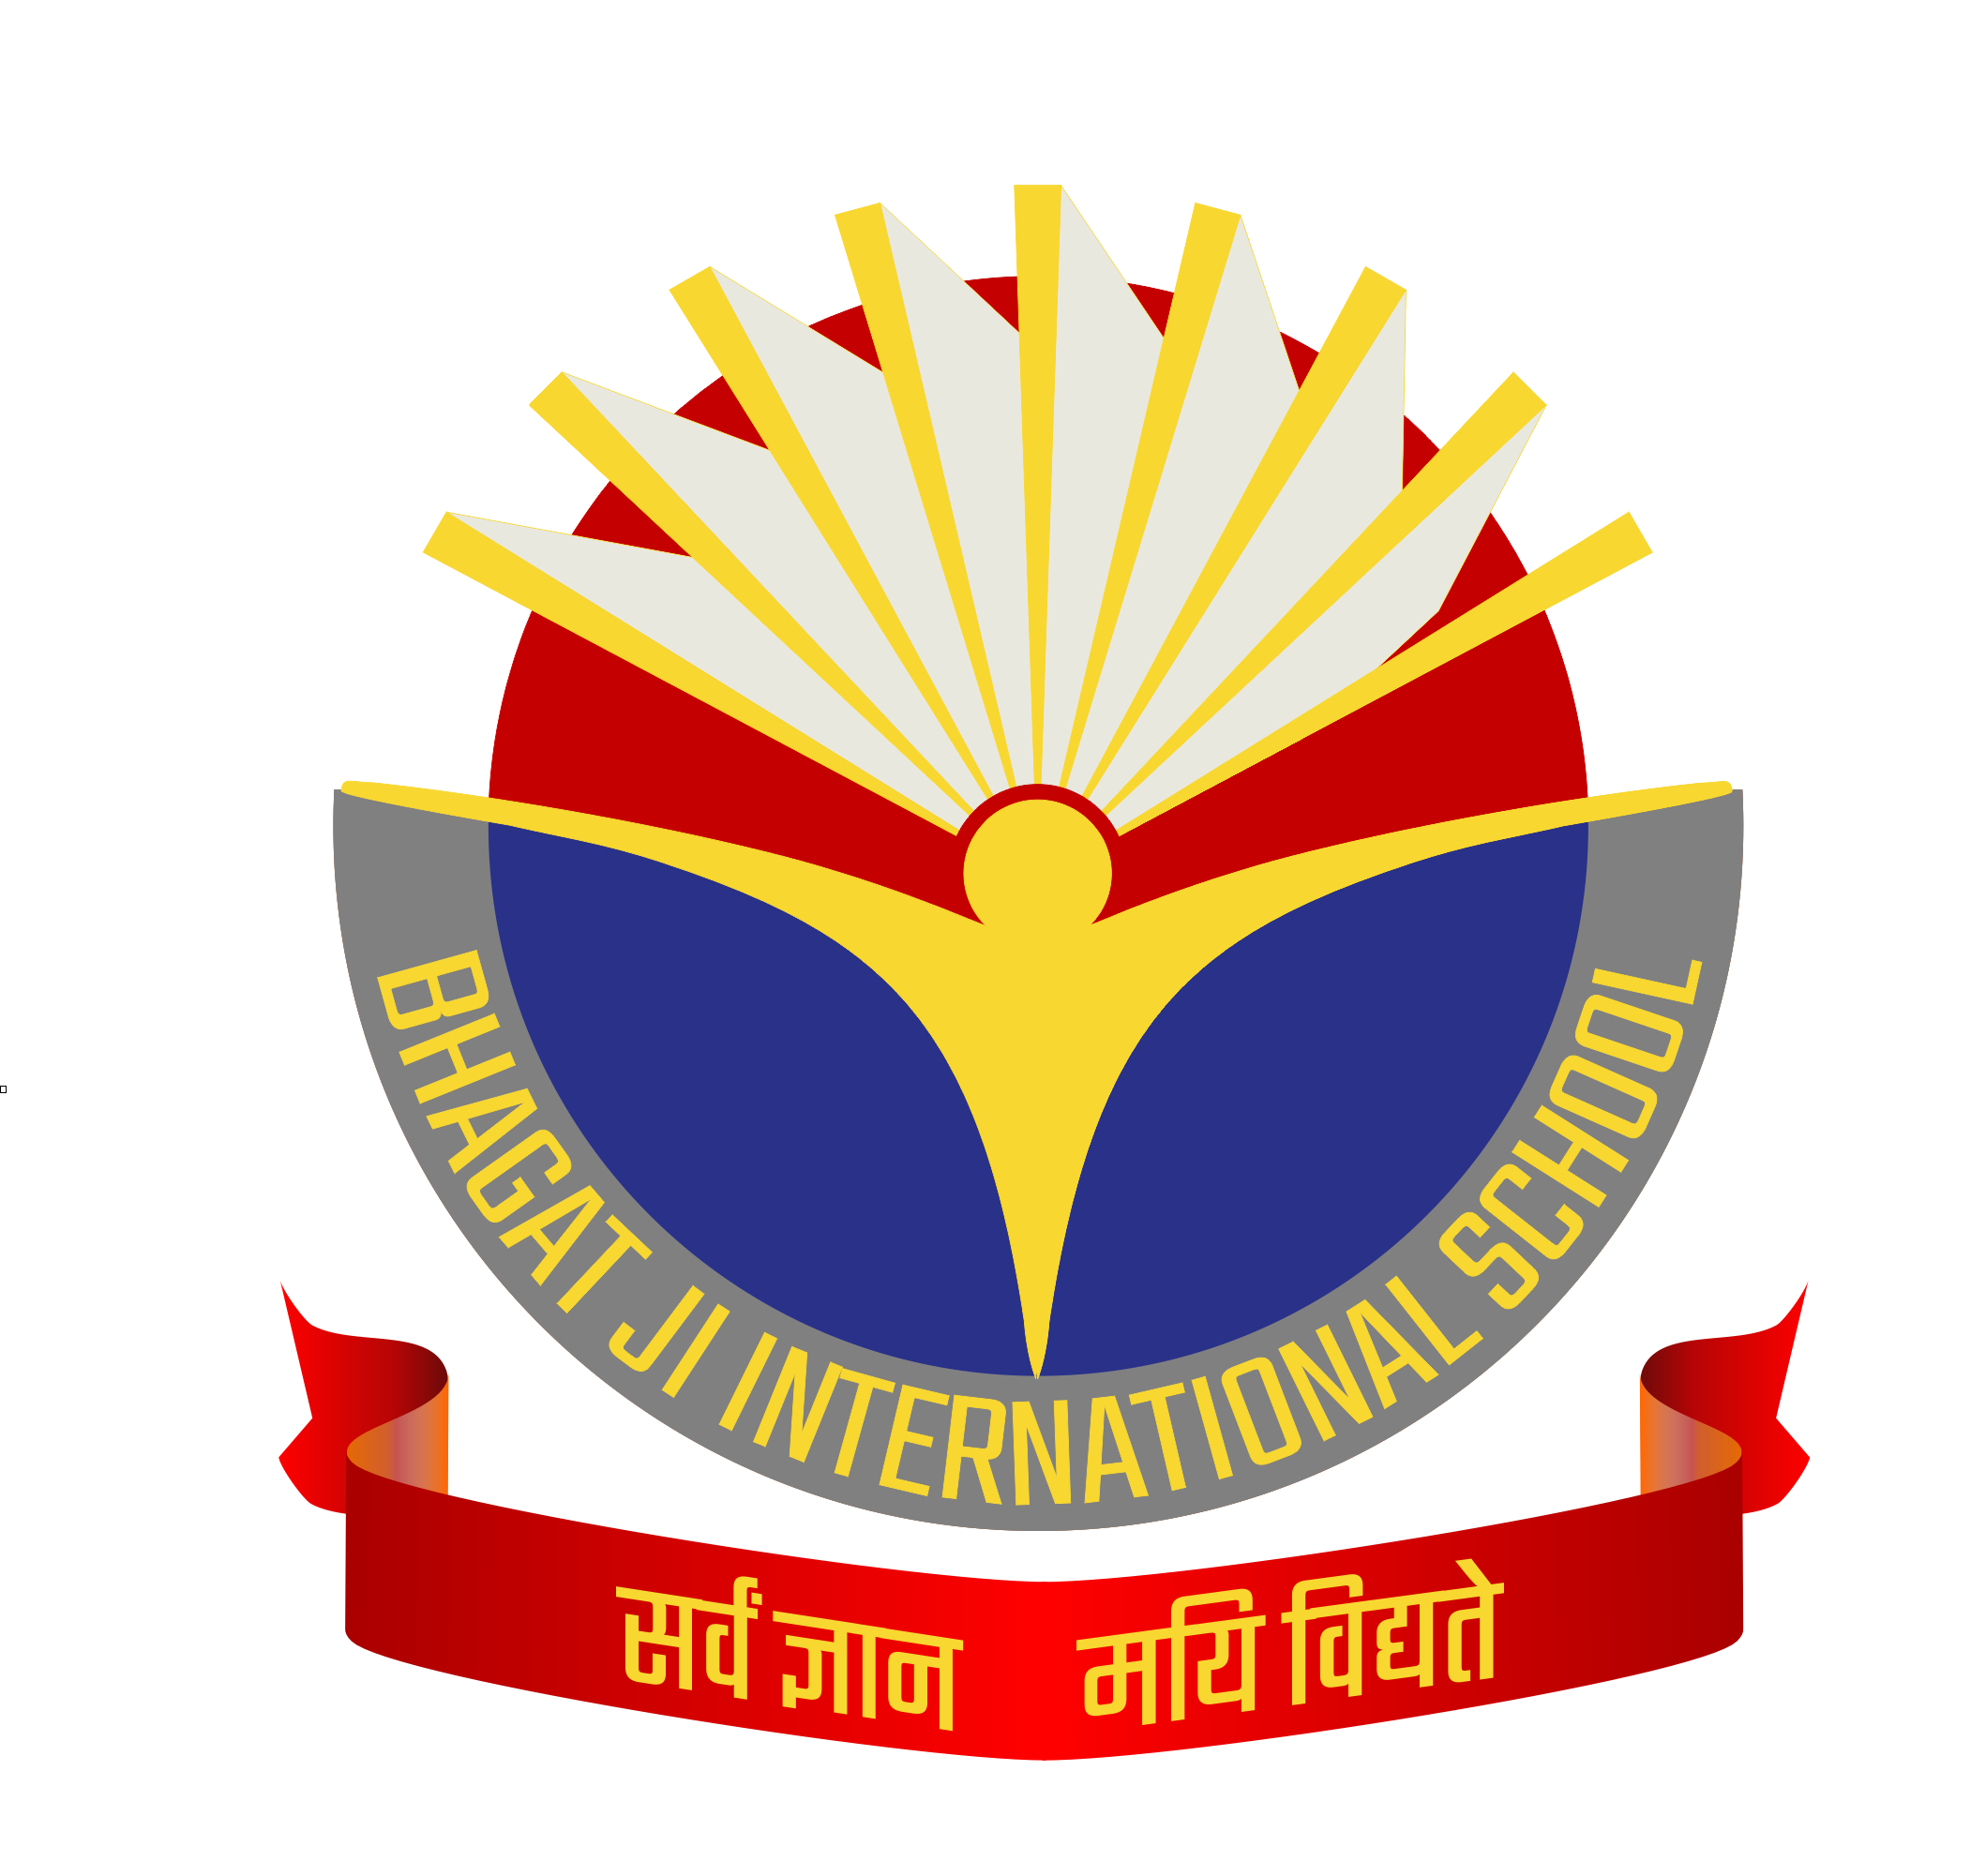 Bhagat Ji International School